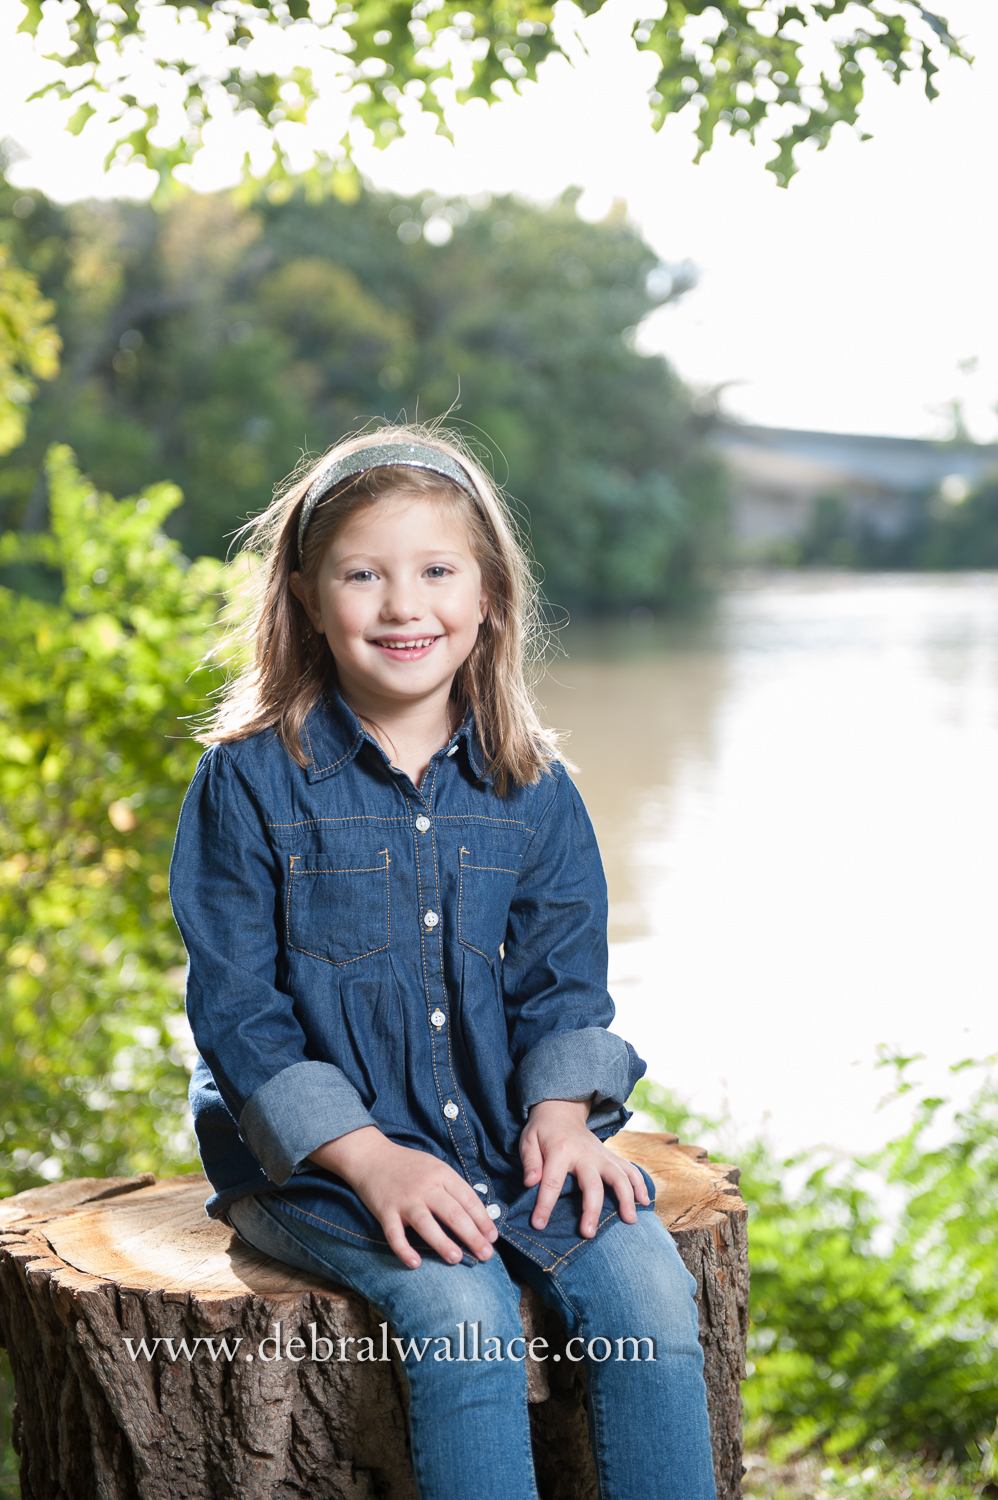 Genesee valley park family mini sessions-0022